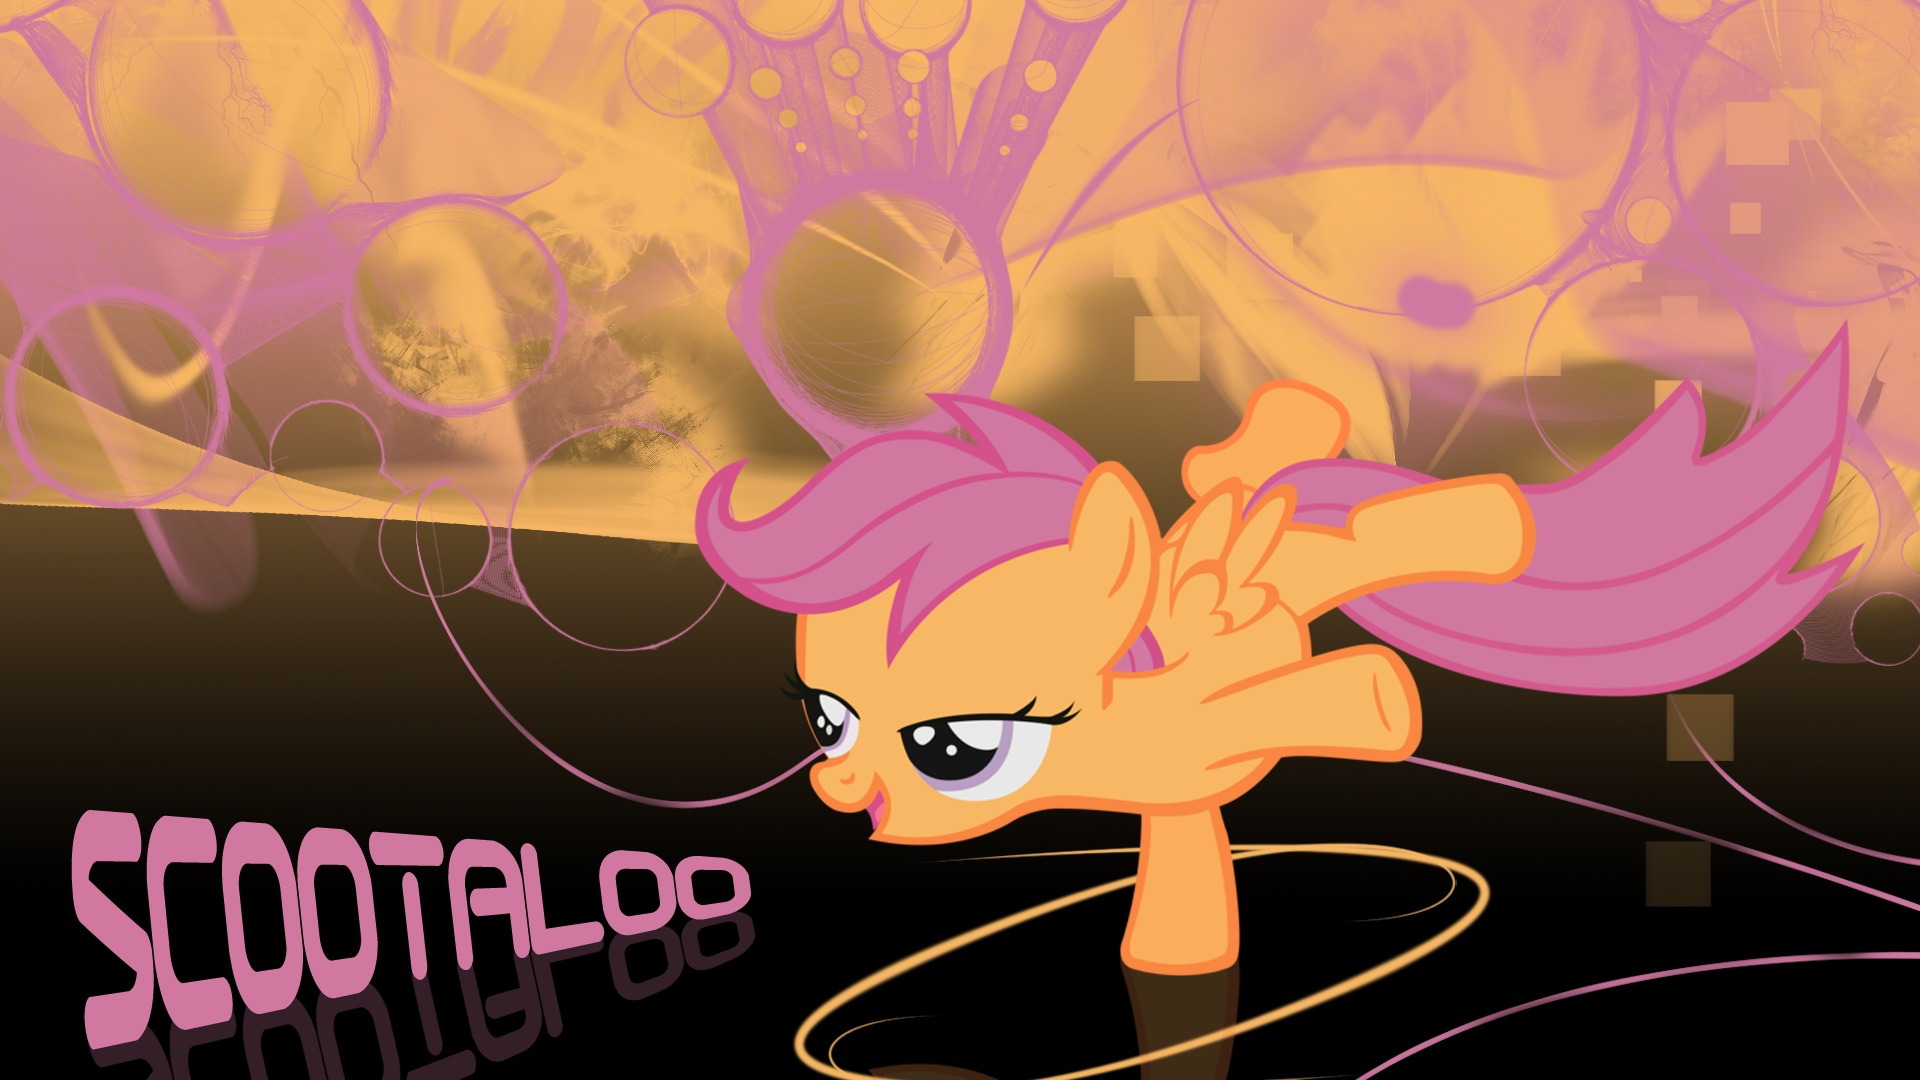 1920x1080 Scootaloo, my little pony friendship is magic, mlp, cartoon, cartoons